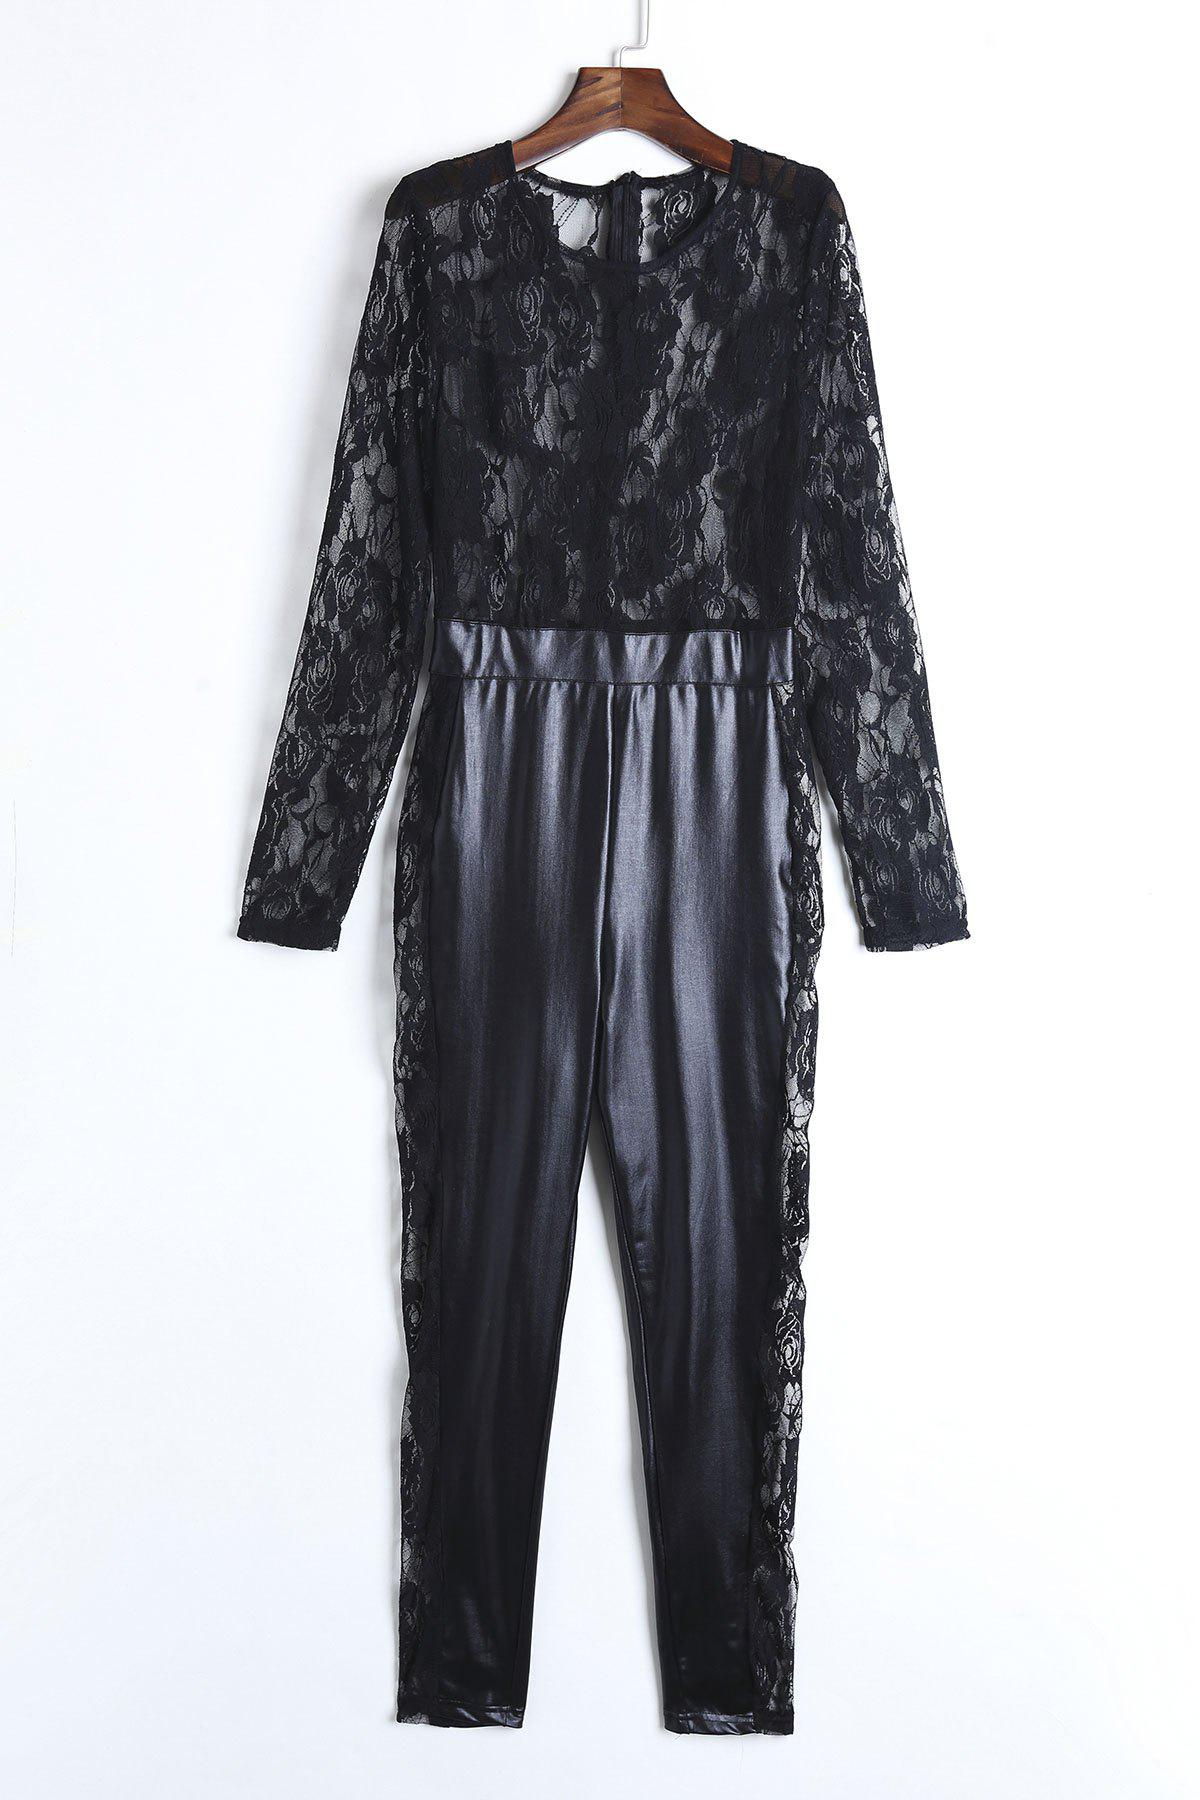 Sexy Women's Round Neck Lace Spliced PU Leather Long Sleeve Jumpsuit - BLACK XL